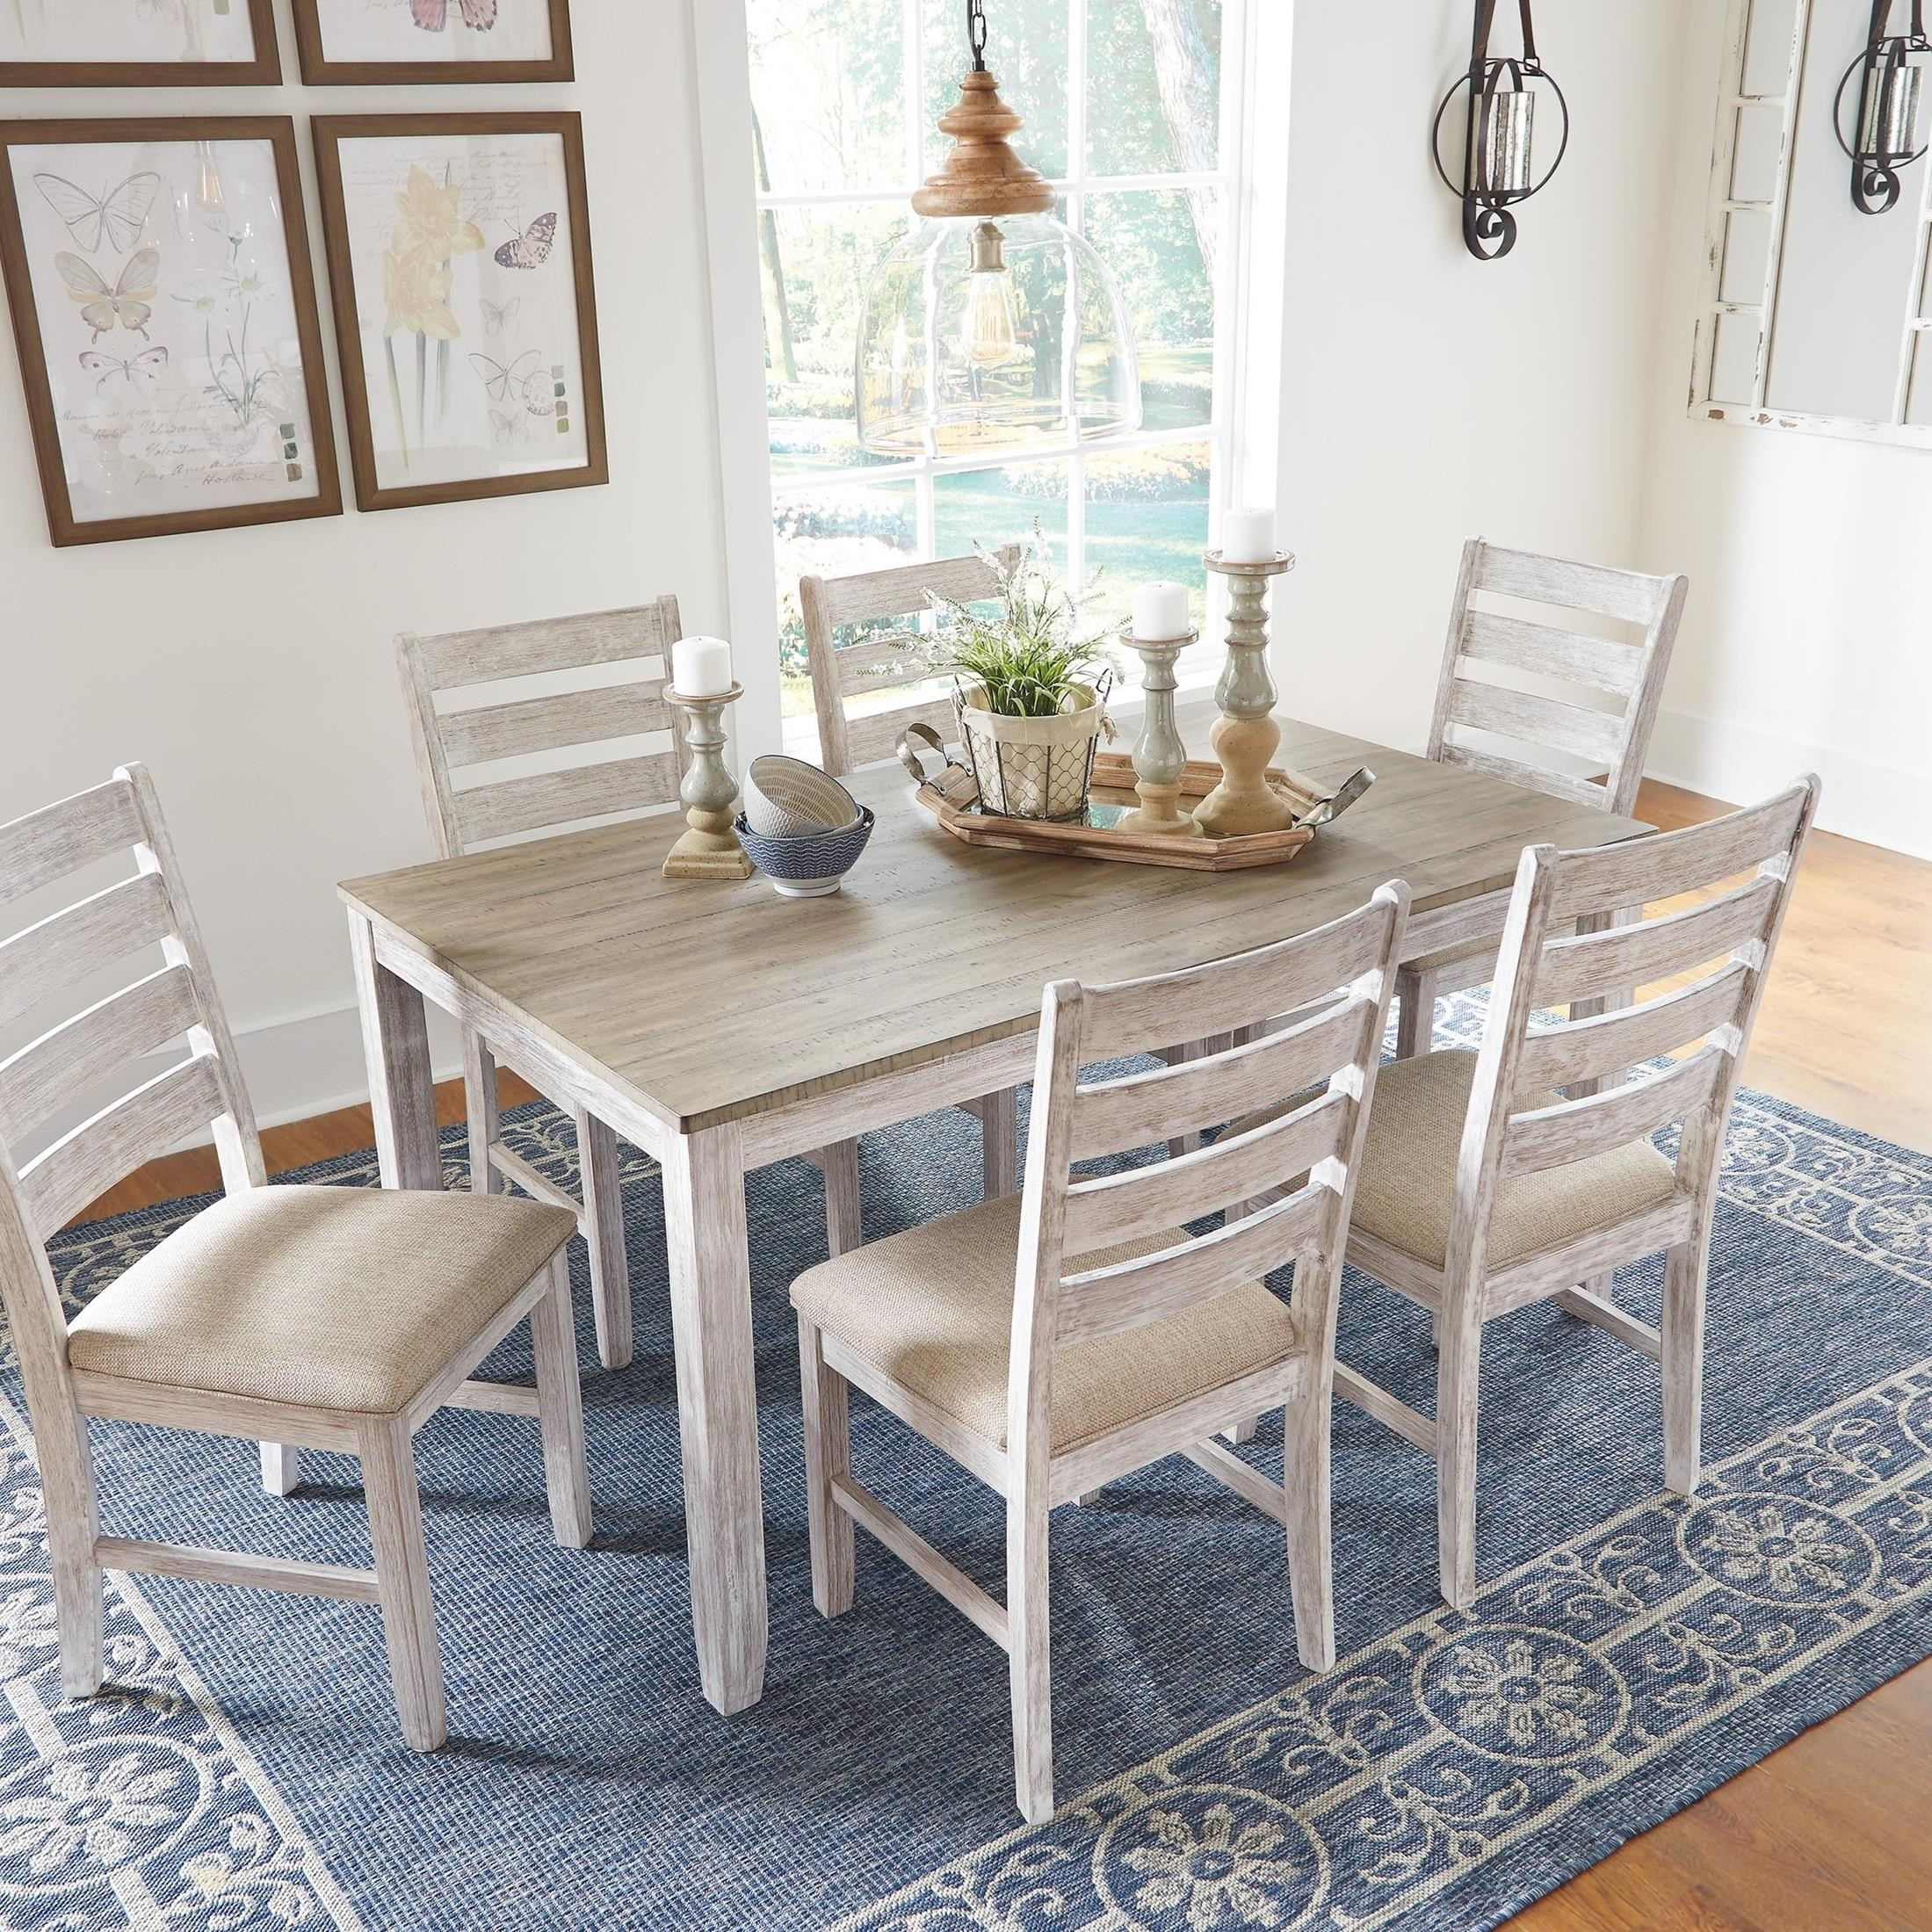 Signature Design By Ashley Skempton Relaxed Vintage Seven Piece Dining Set With Two Tone Finish